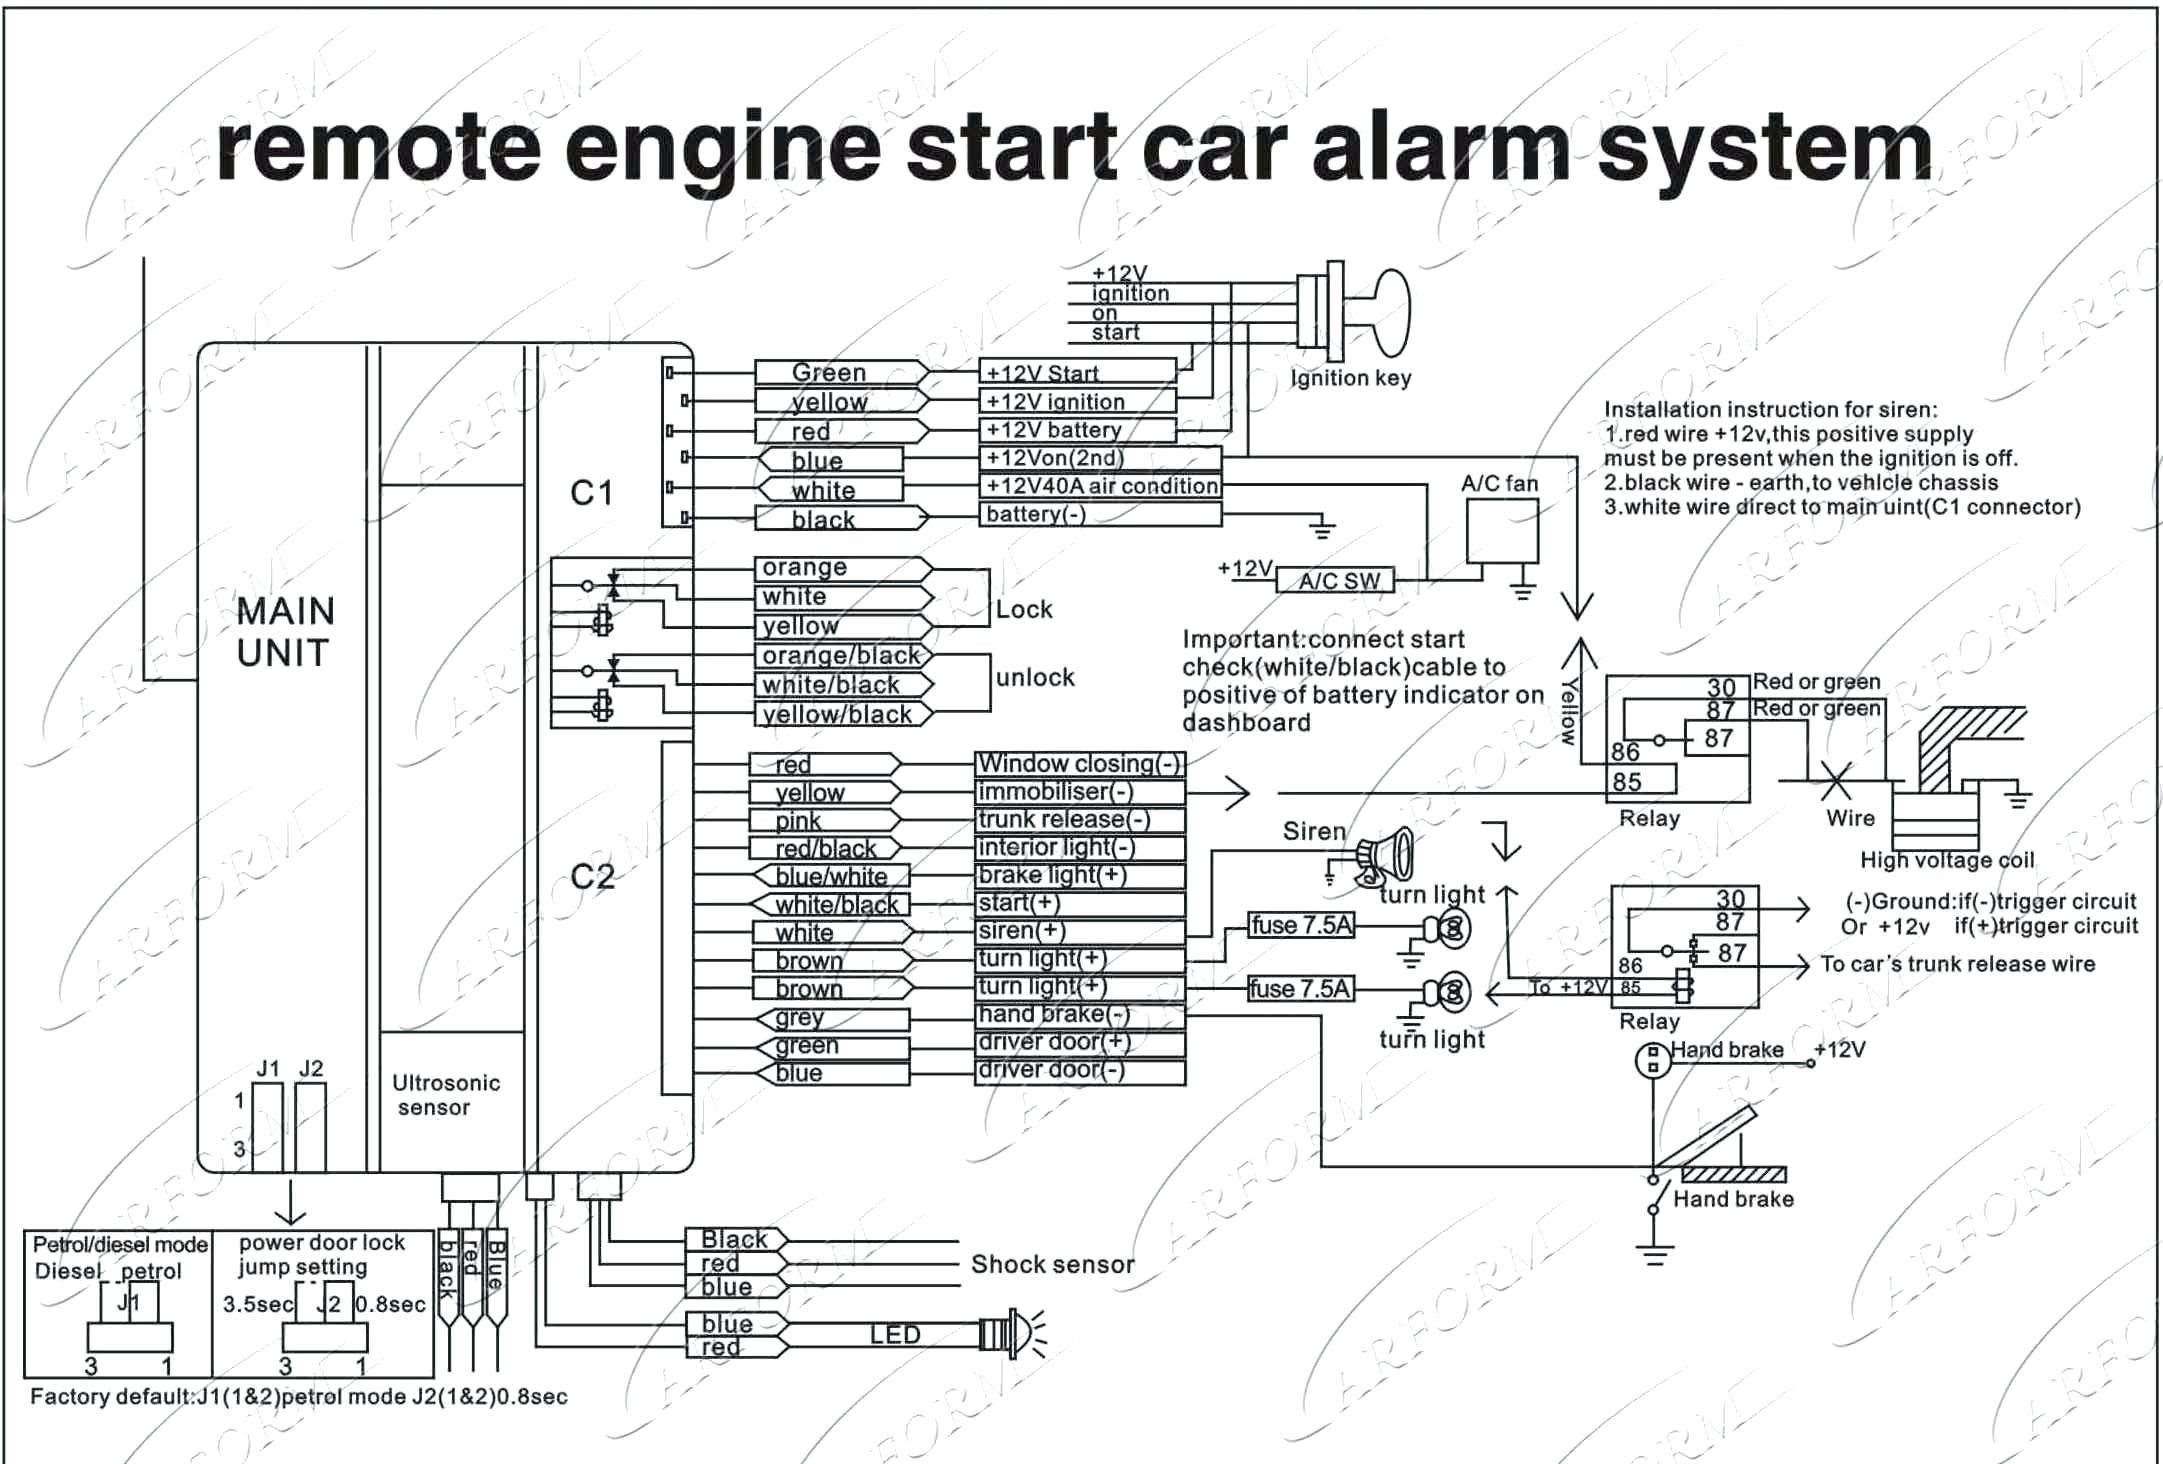 bogen paging system wiring diagram example of fishbone with cause and effect vehicle security electricity site for alarm